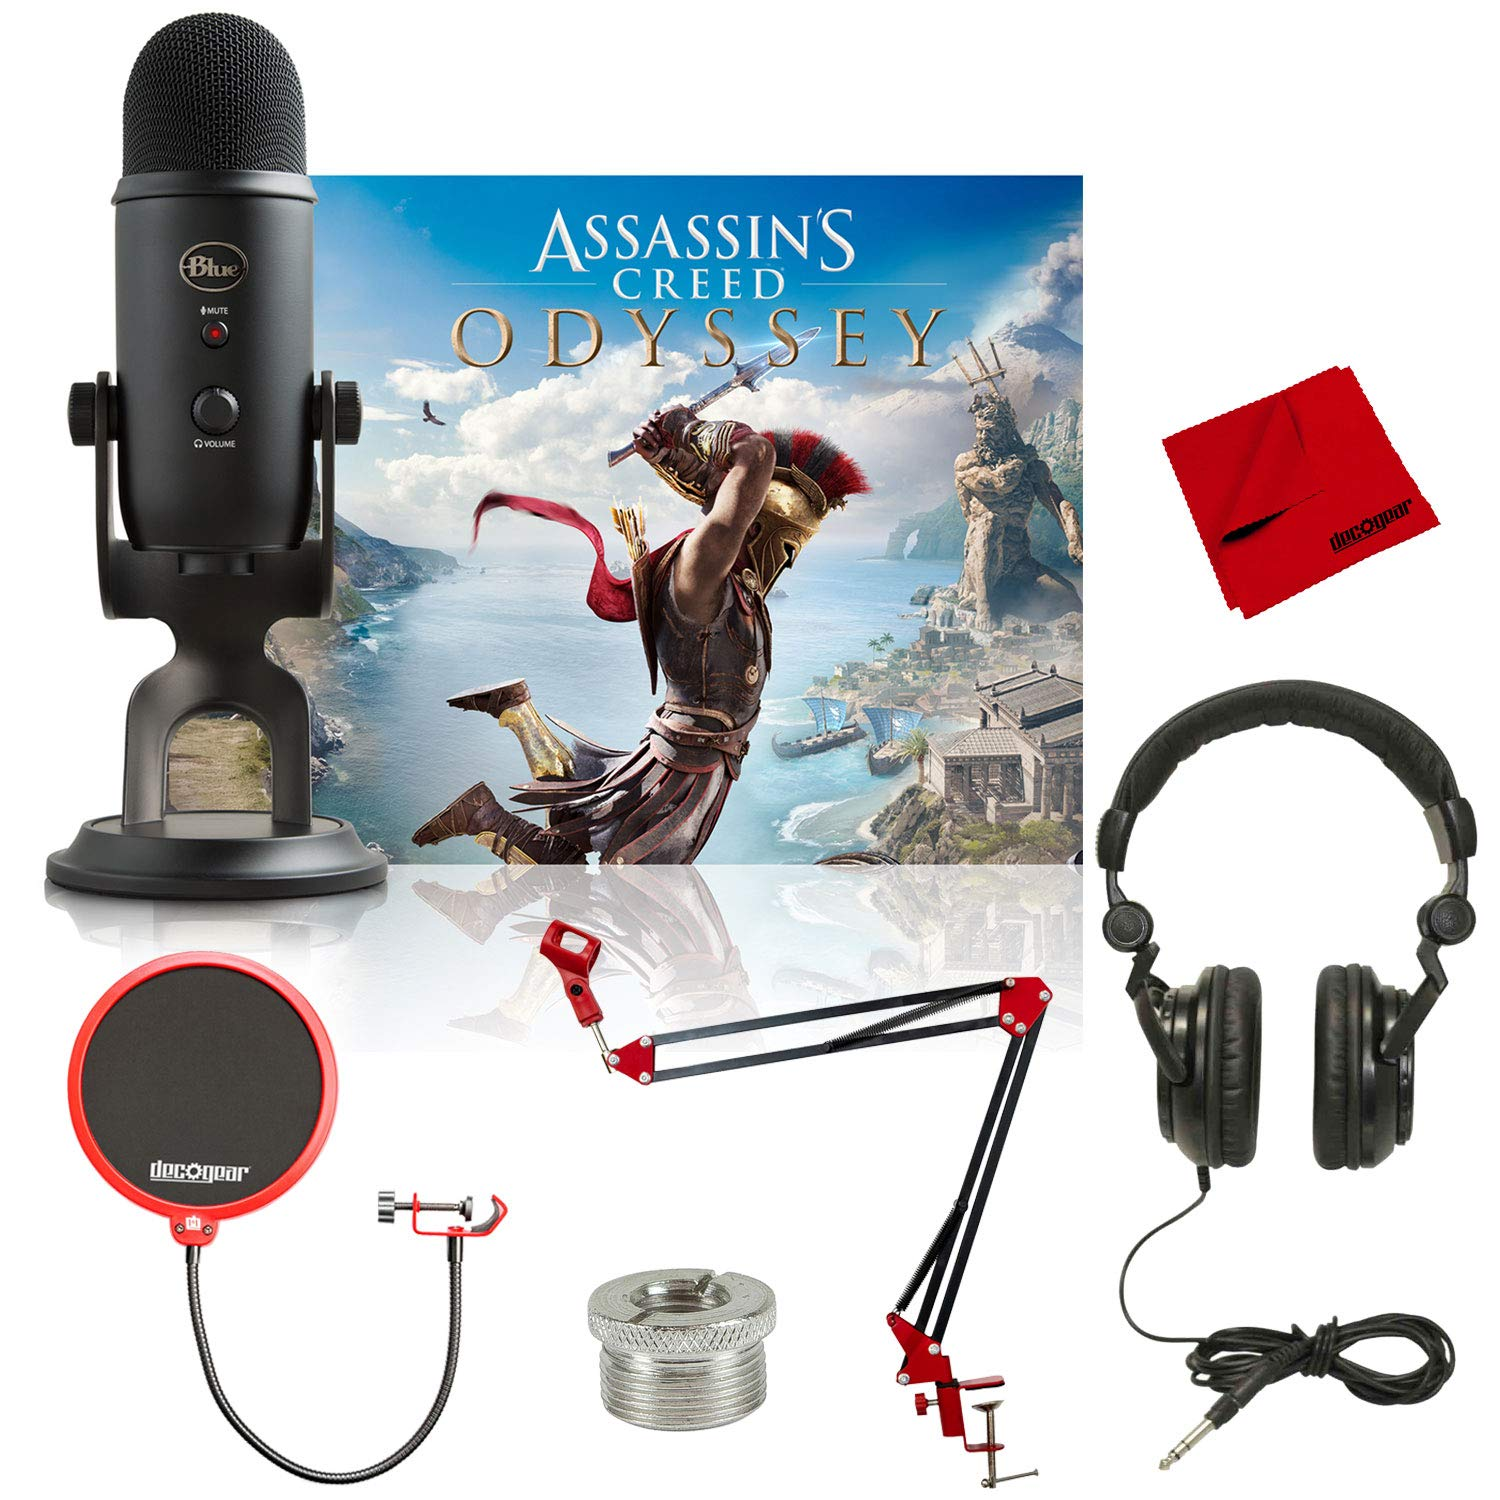 Blue Yeti Blackout USB Microphone + Assassin's Creed Odyssey Bundle and Deco Gear Twitch Streamer Combo - Includes Boom Arm, Pop Filter, Screw Adapter, Tascam Headphones, and Microfiber Cleaning Cloth